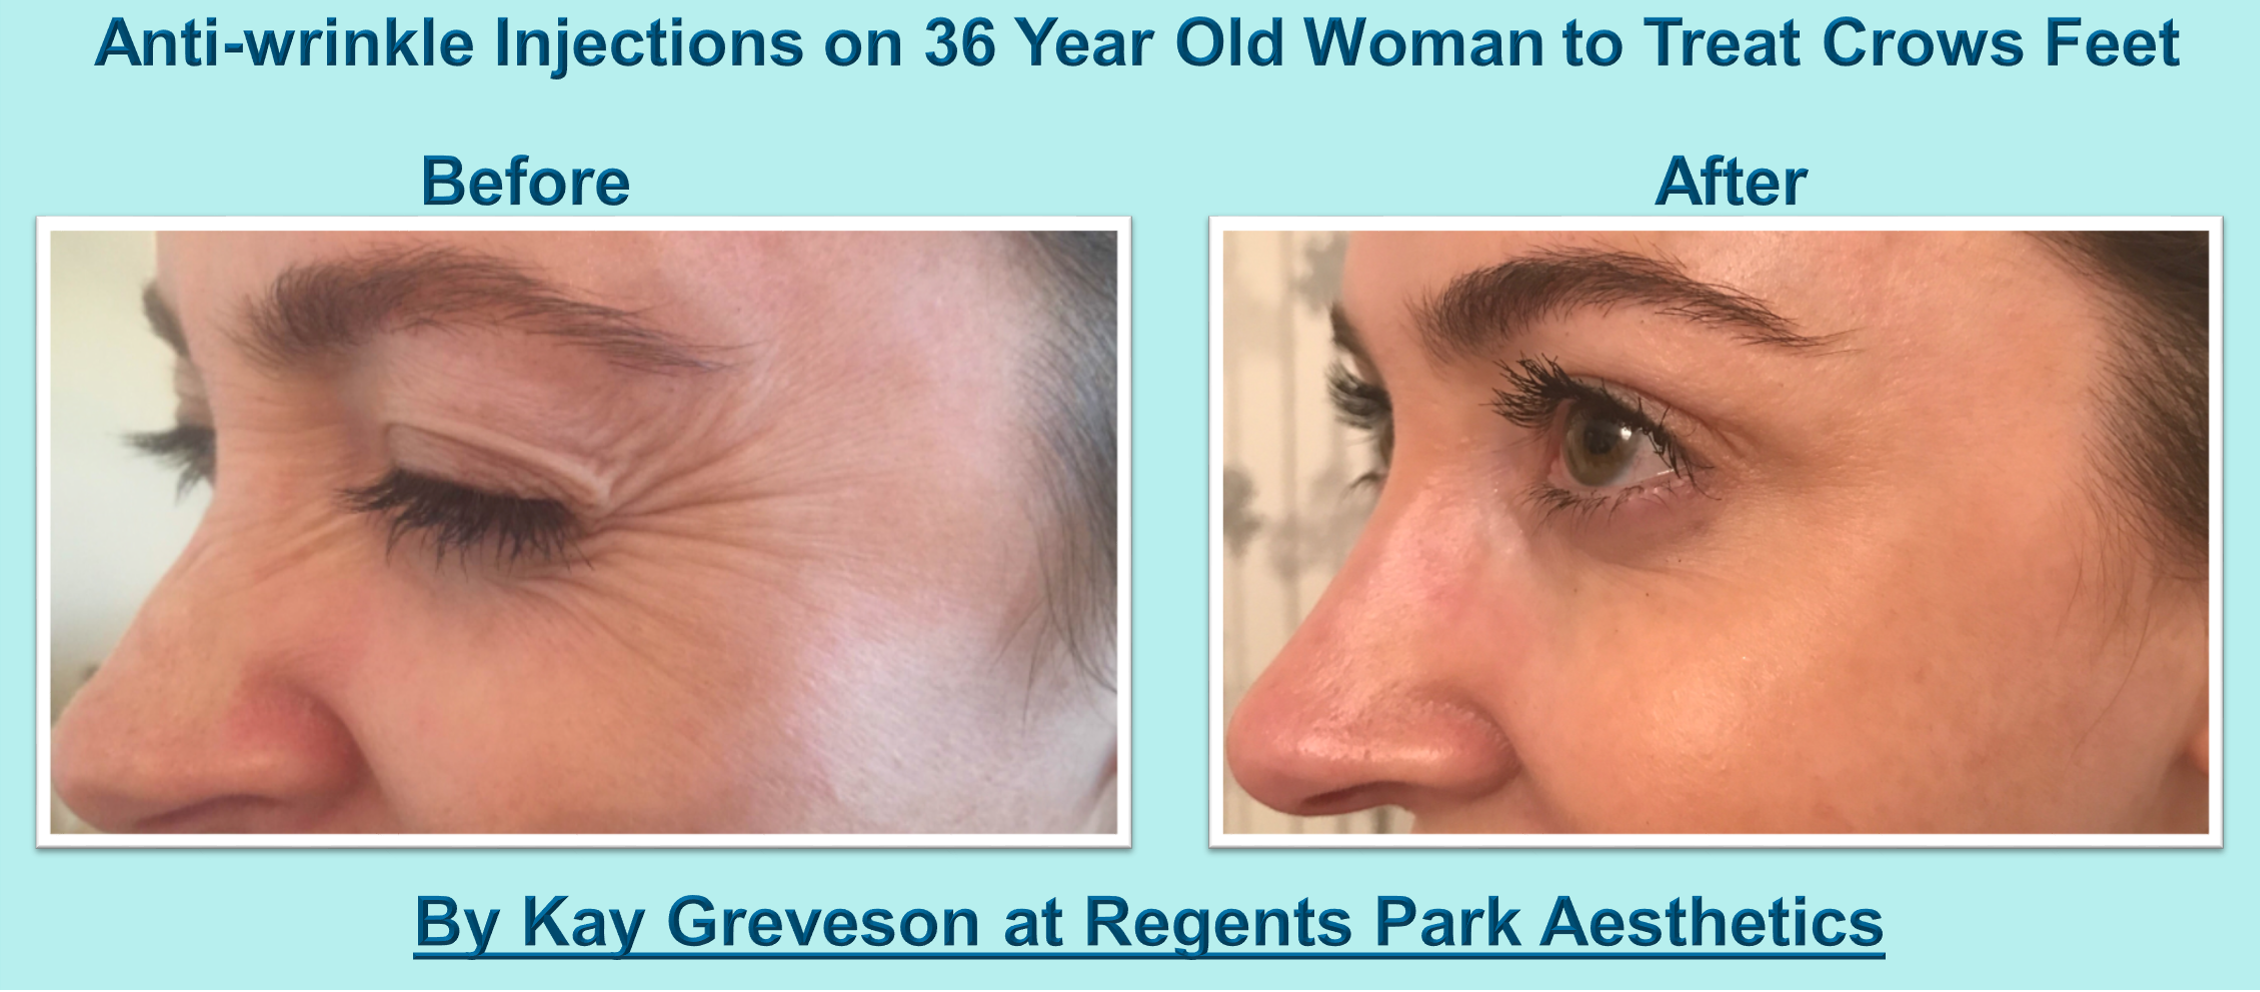 Botox Crows Feet Kay Greveson - Save Face